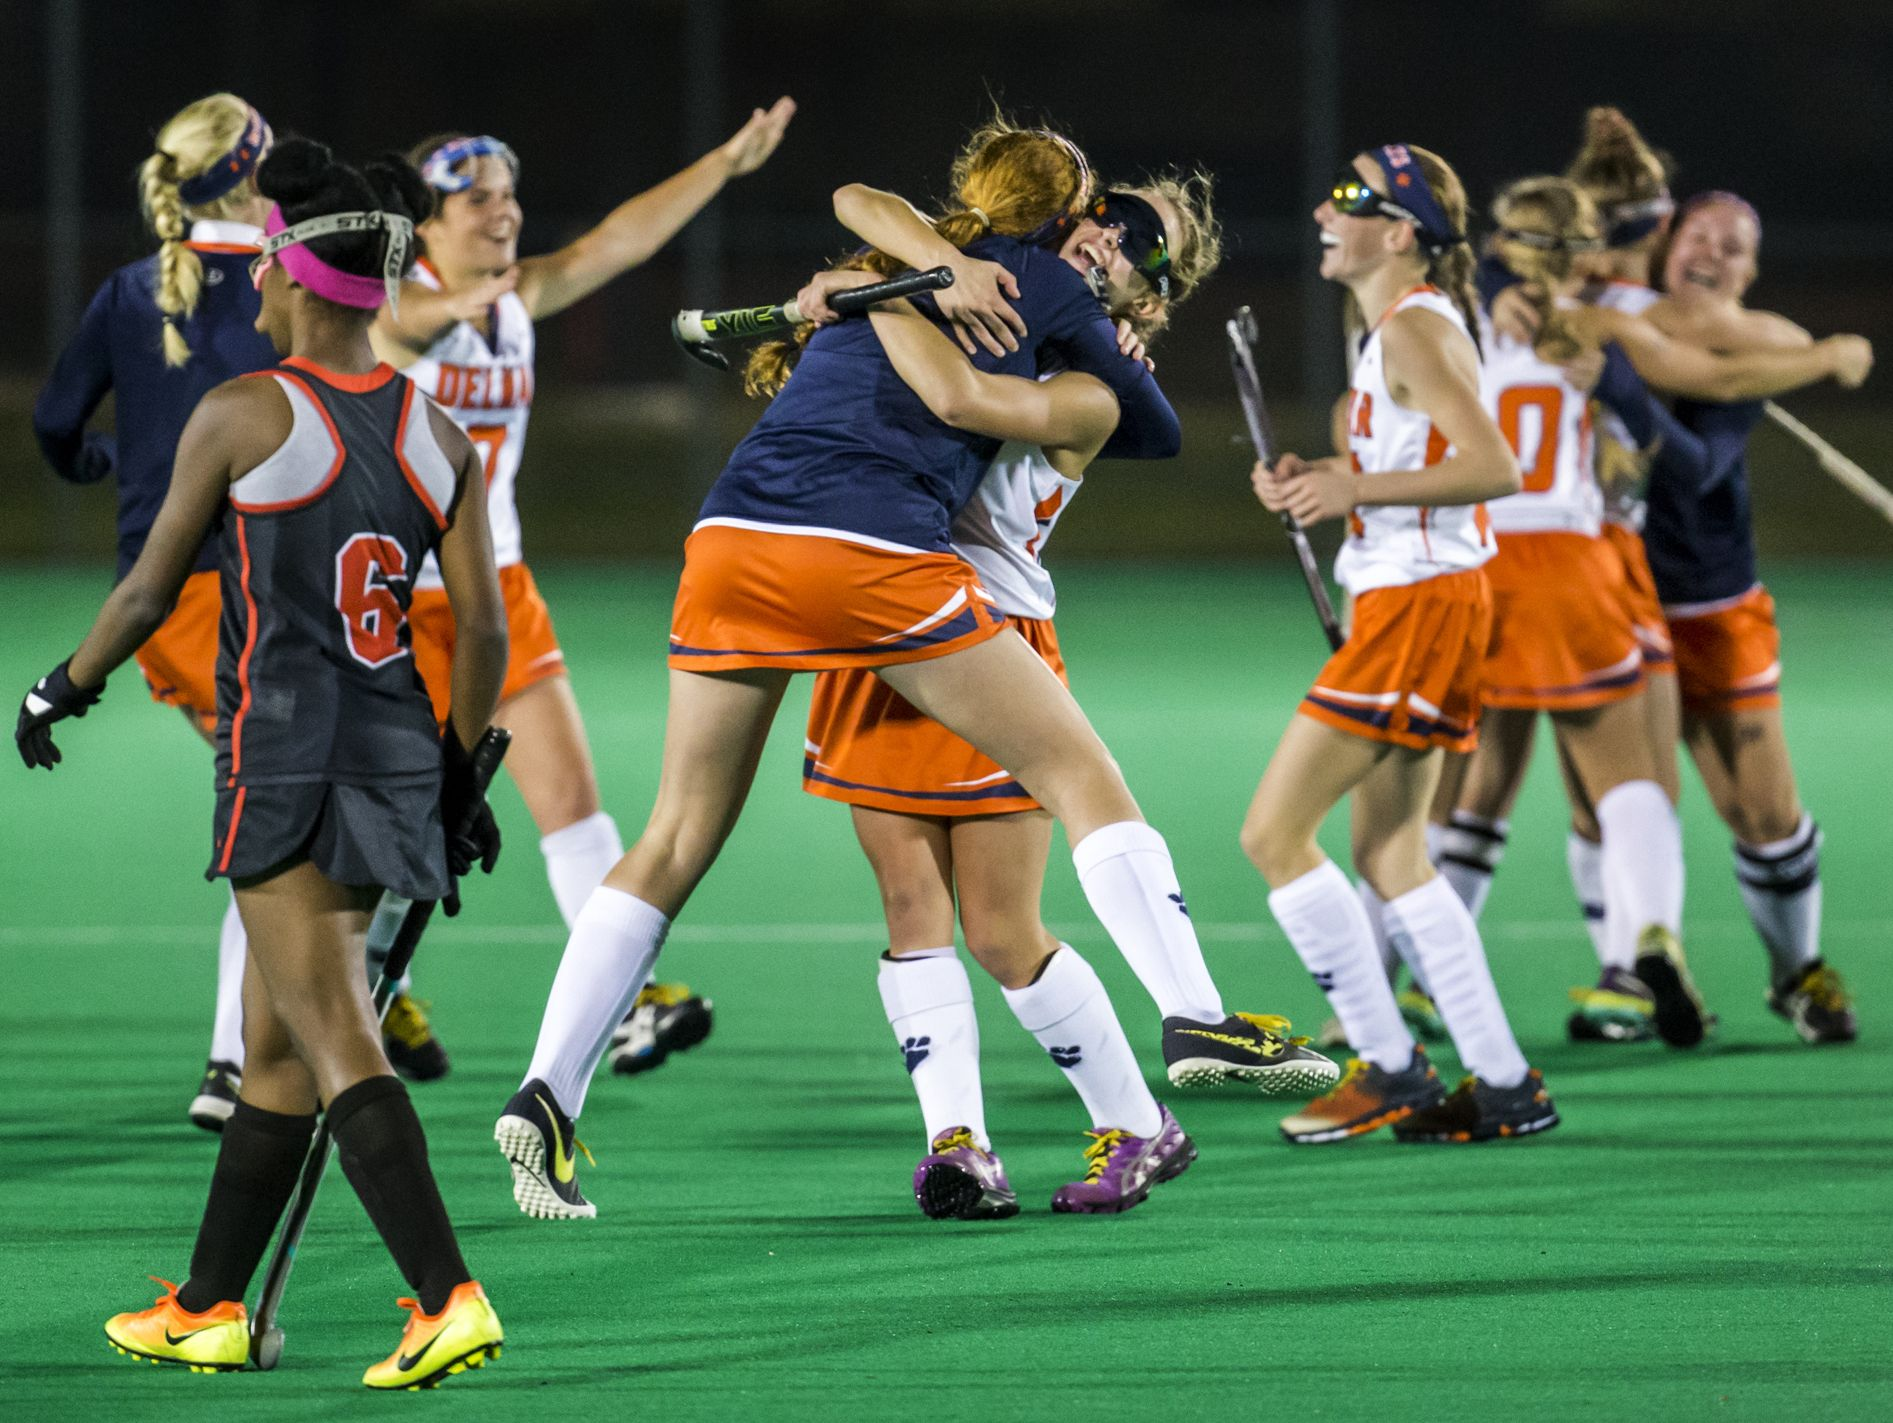 Delmar players celebrate their 2-0 win over Polytech in their DIAA state tournament semi-final game at the University of Delaware in Newark on Tuesday night.